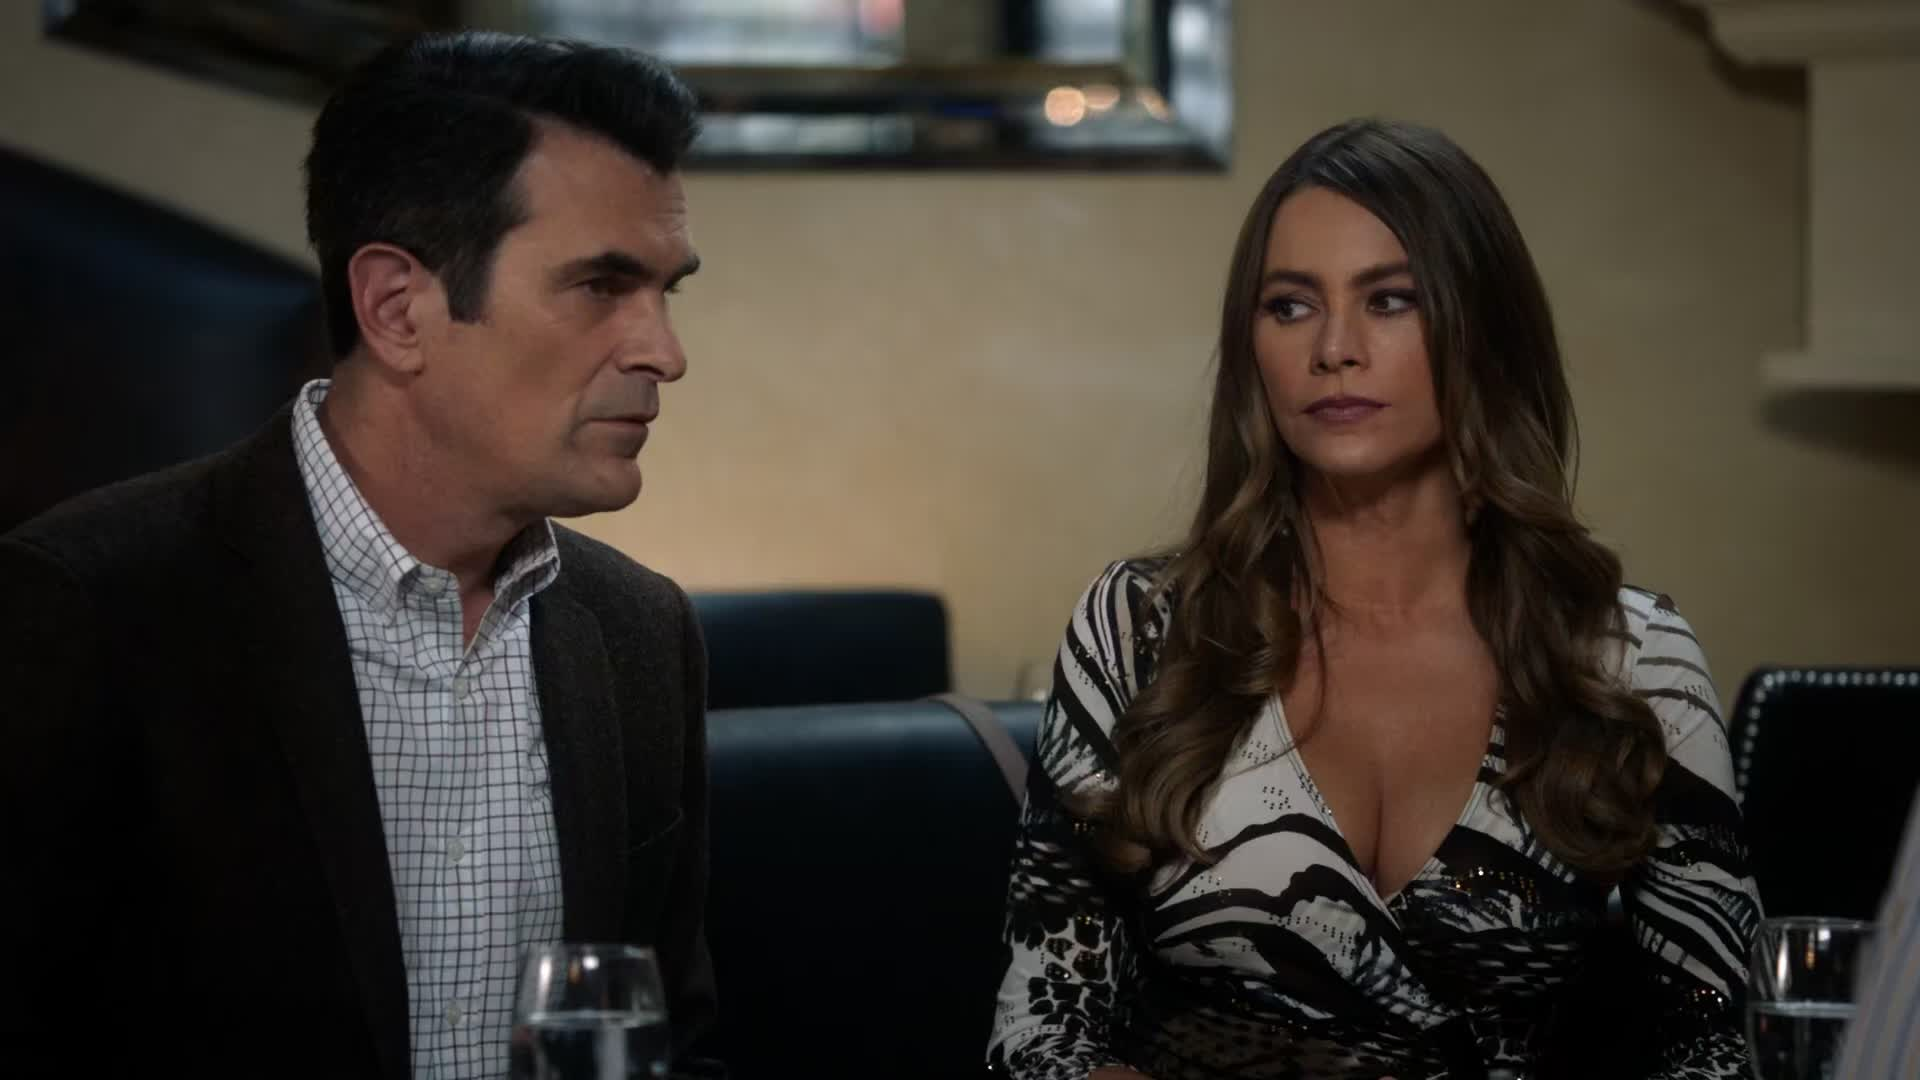 Sofia Vergara huge cleavage at table with Ty Burrell and Eric Stonestreet